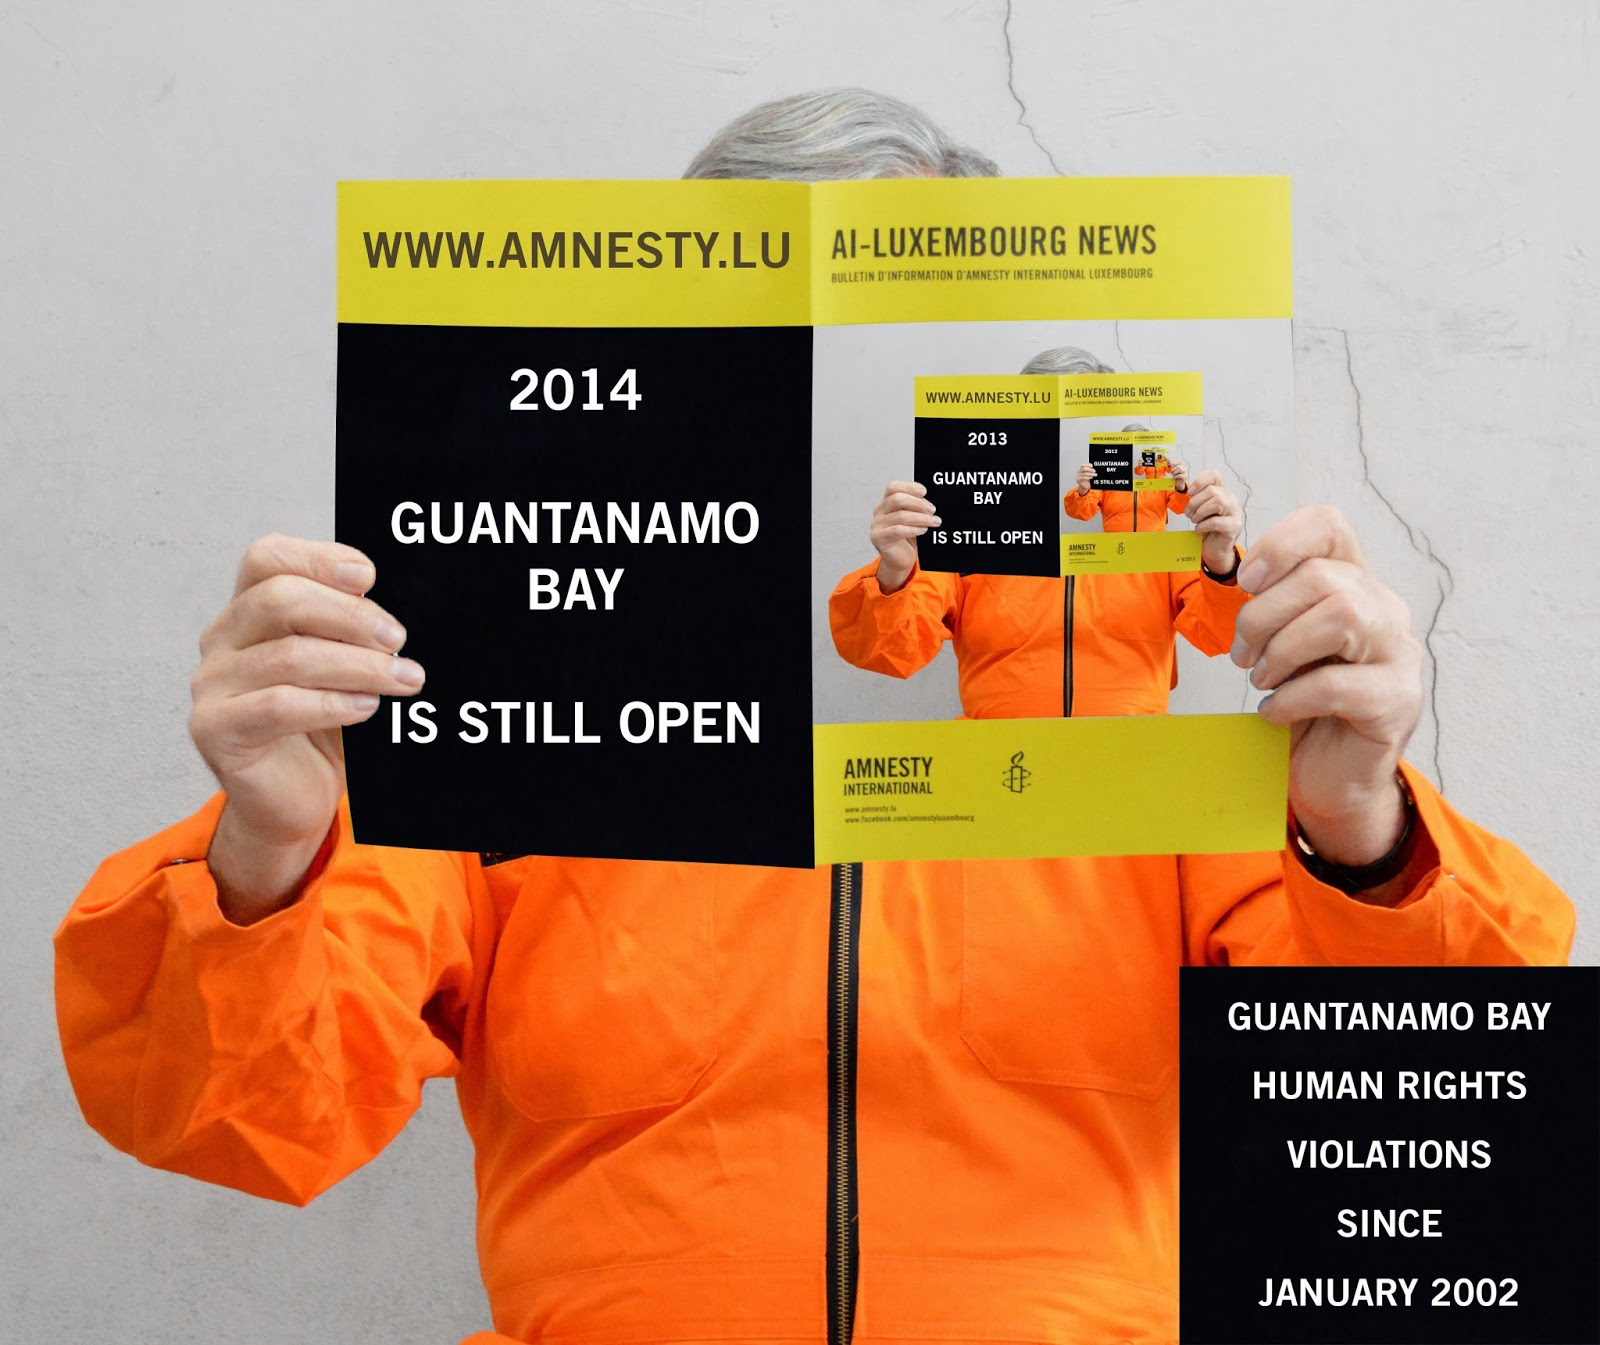 http://amnesty-luxembourg-photos.blogspot.com/2014/01/close-guantanamo-and-end-human-rights.html